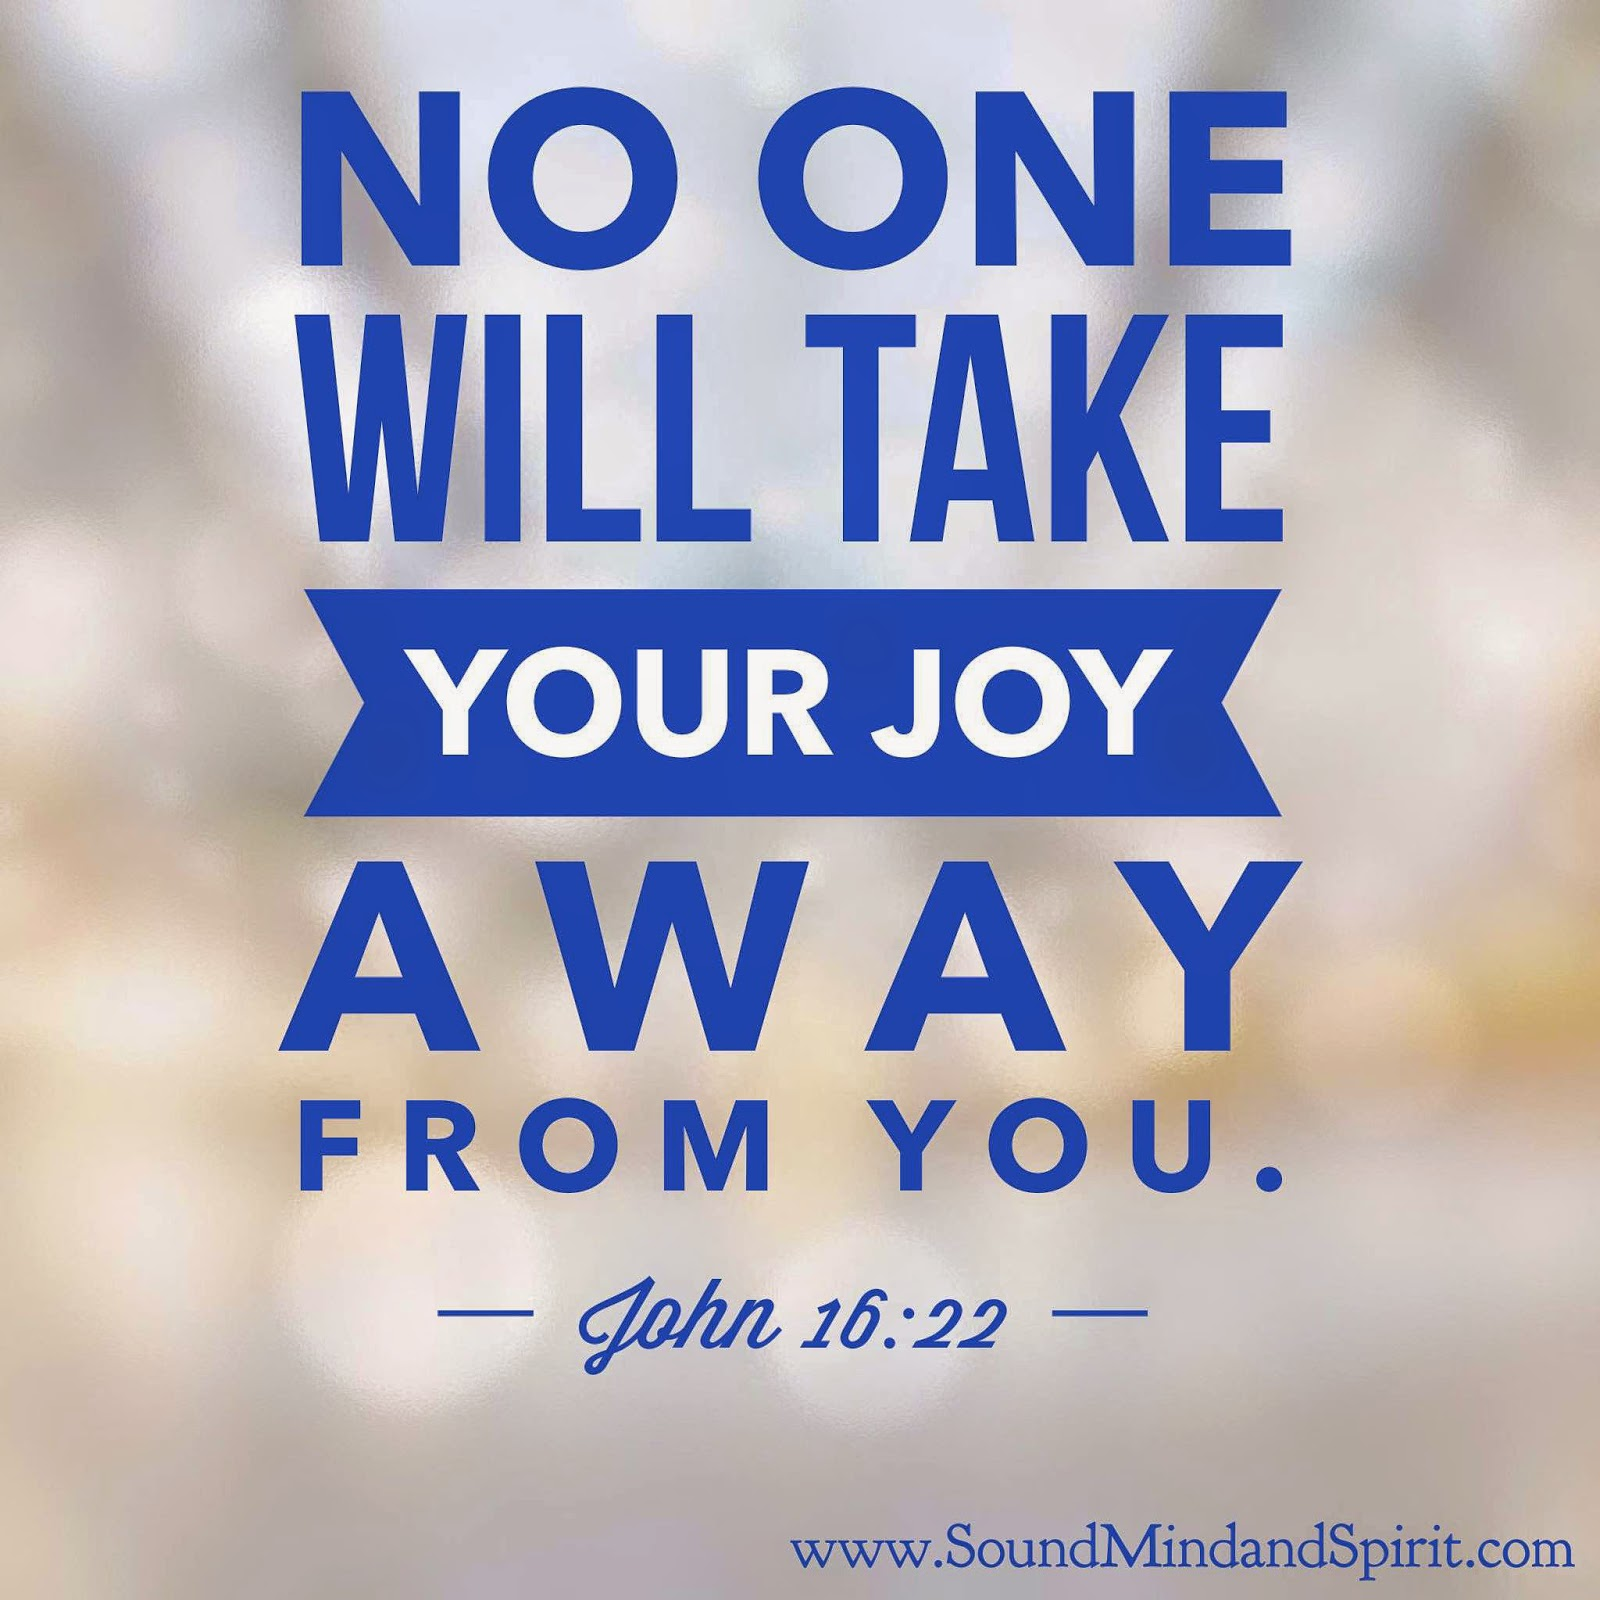 No one will take your joy away - John 16:22